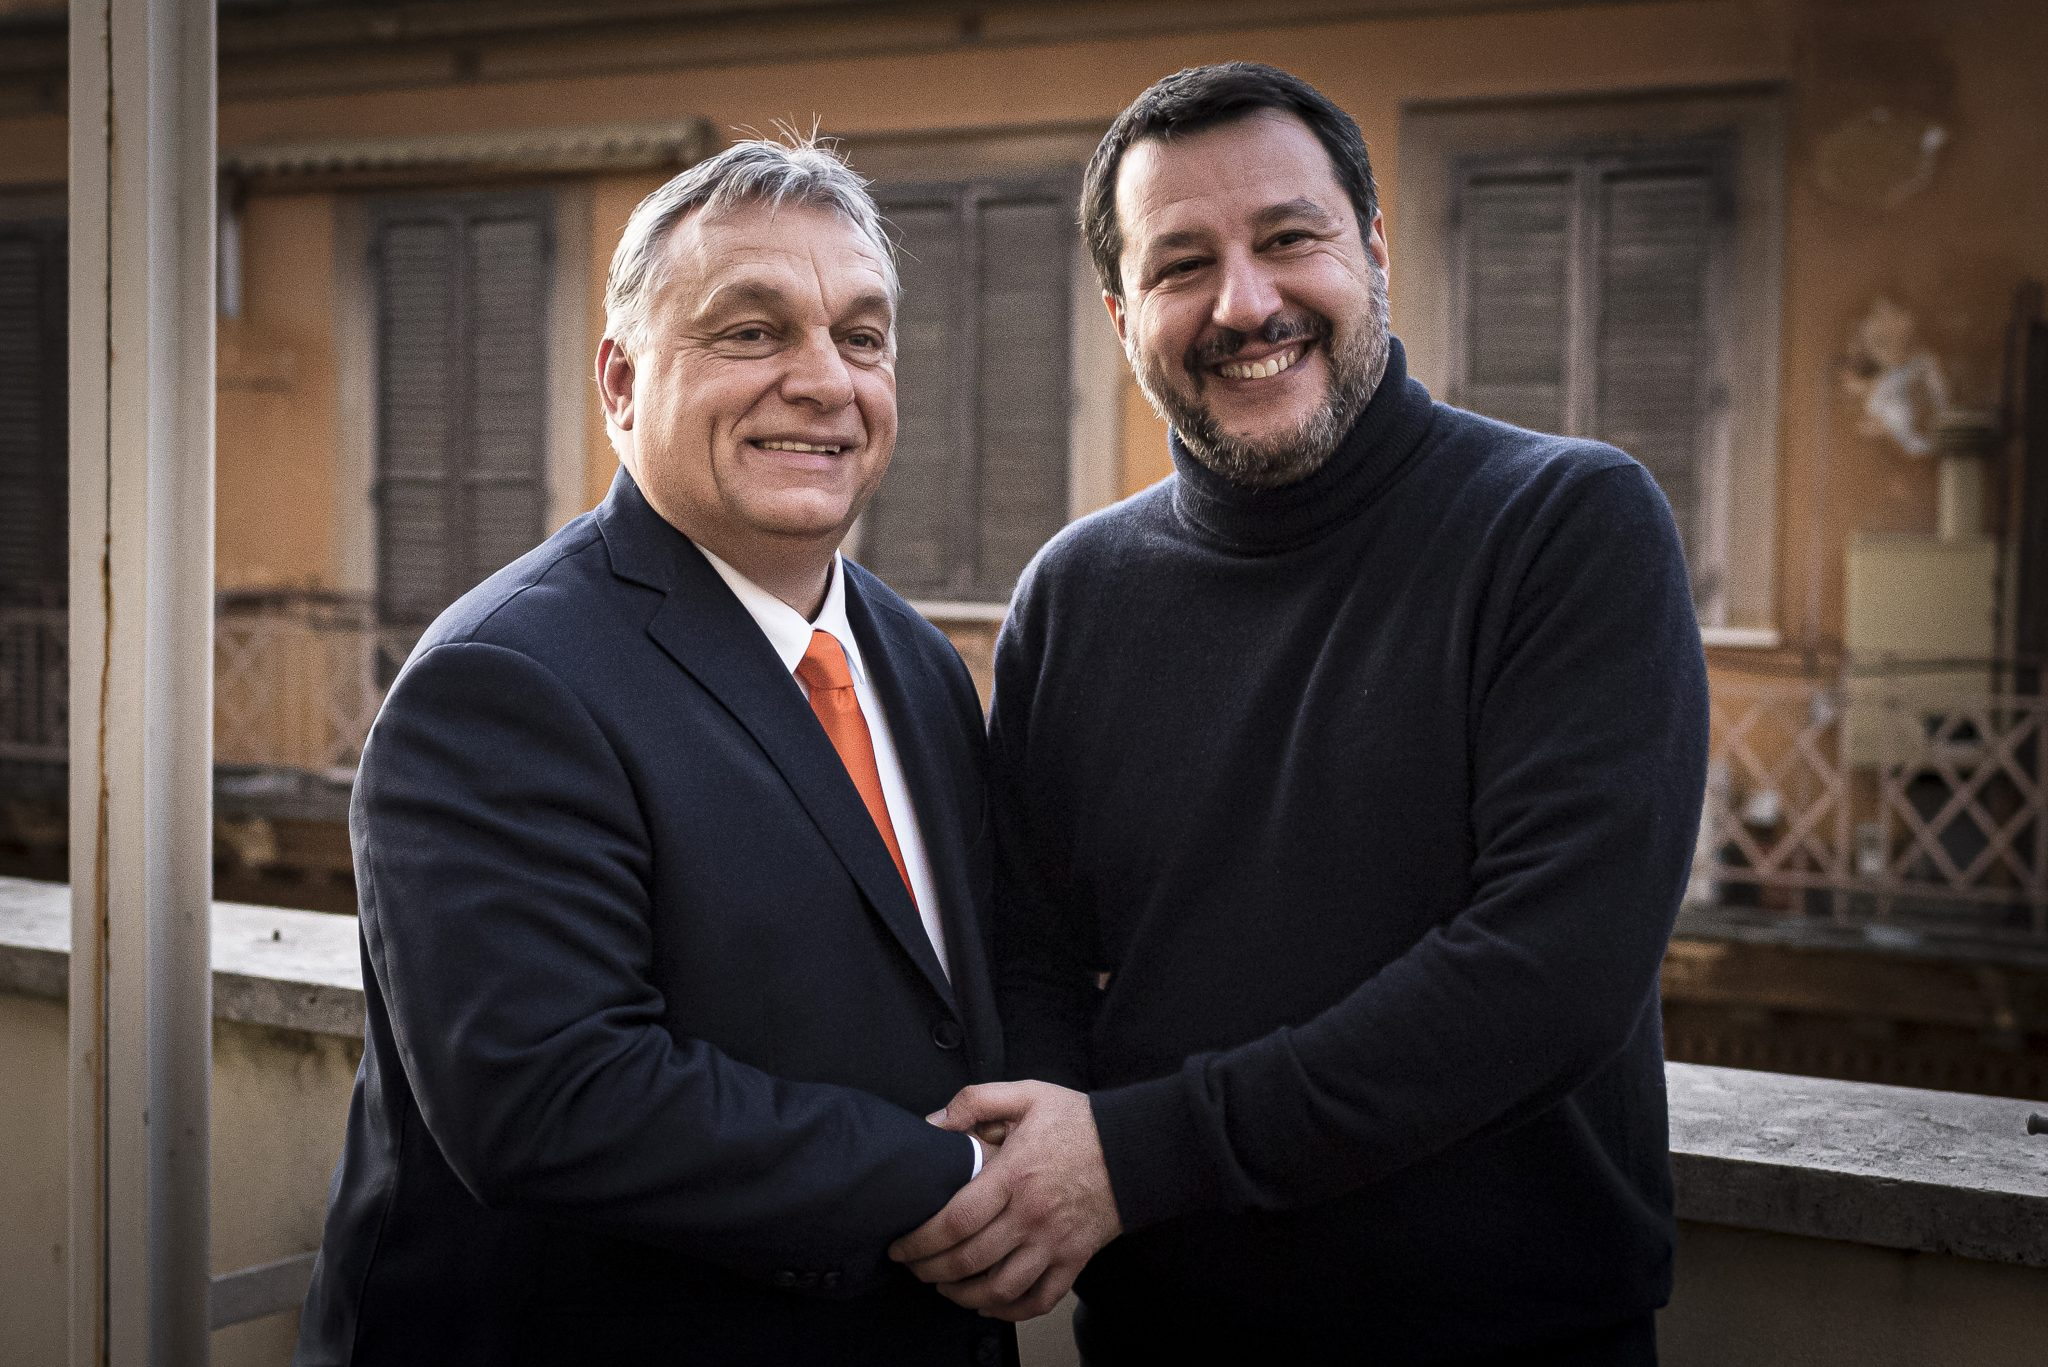 Salvini Assures Orbán of 'Friendship with Hungarians'